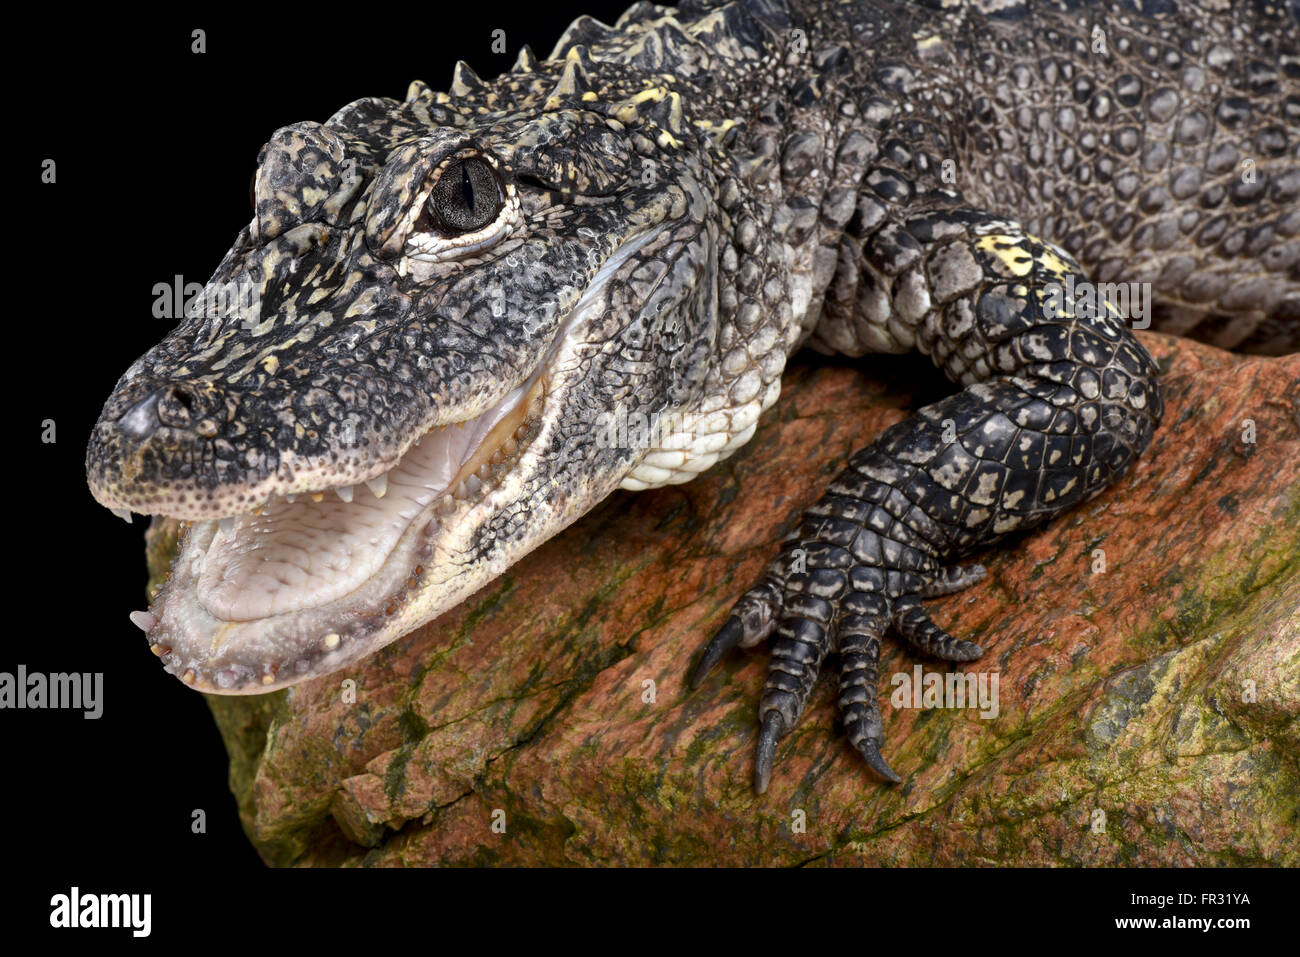 China-Alligator (Alligator Sinensis) Stockbild